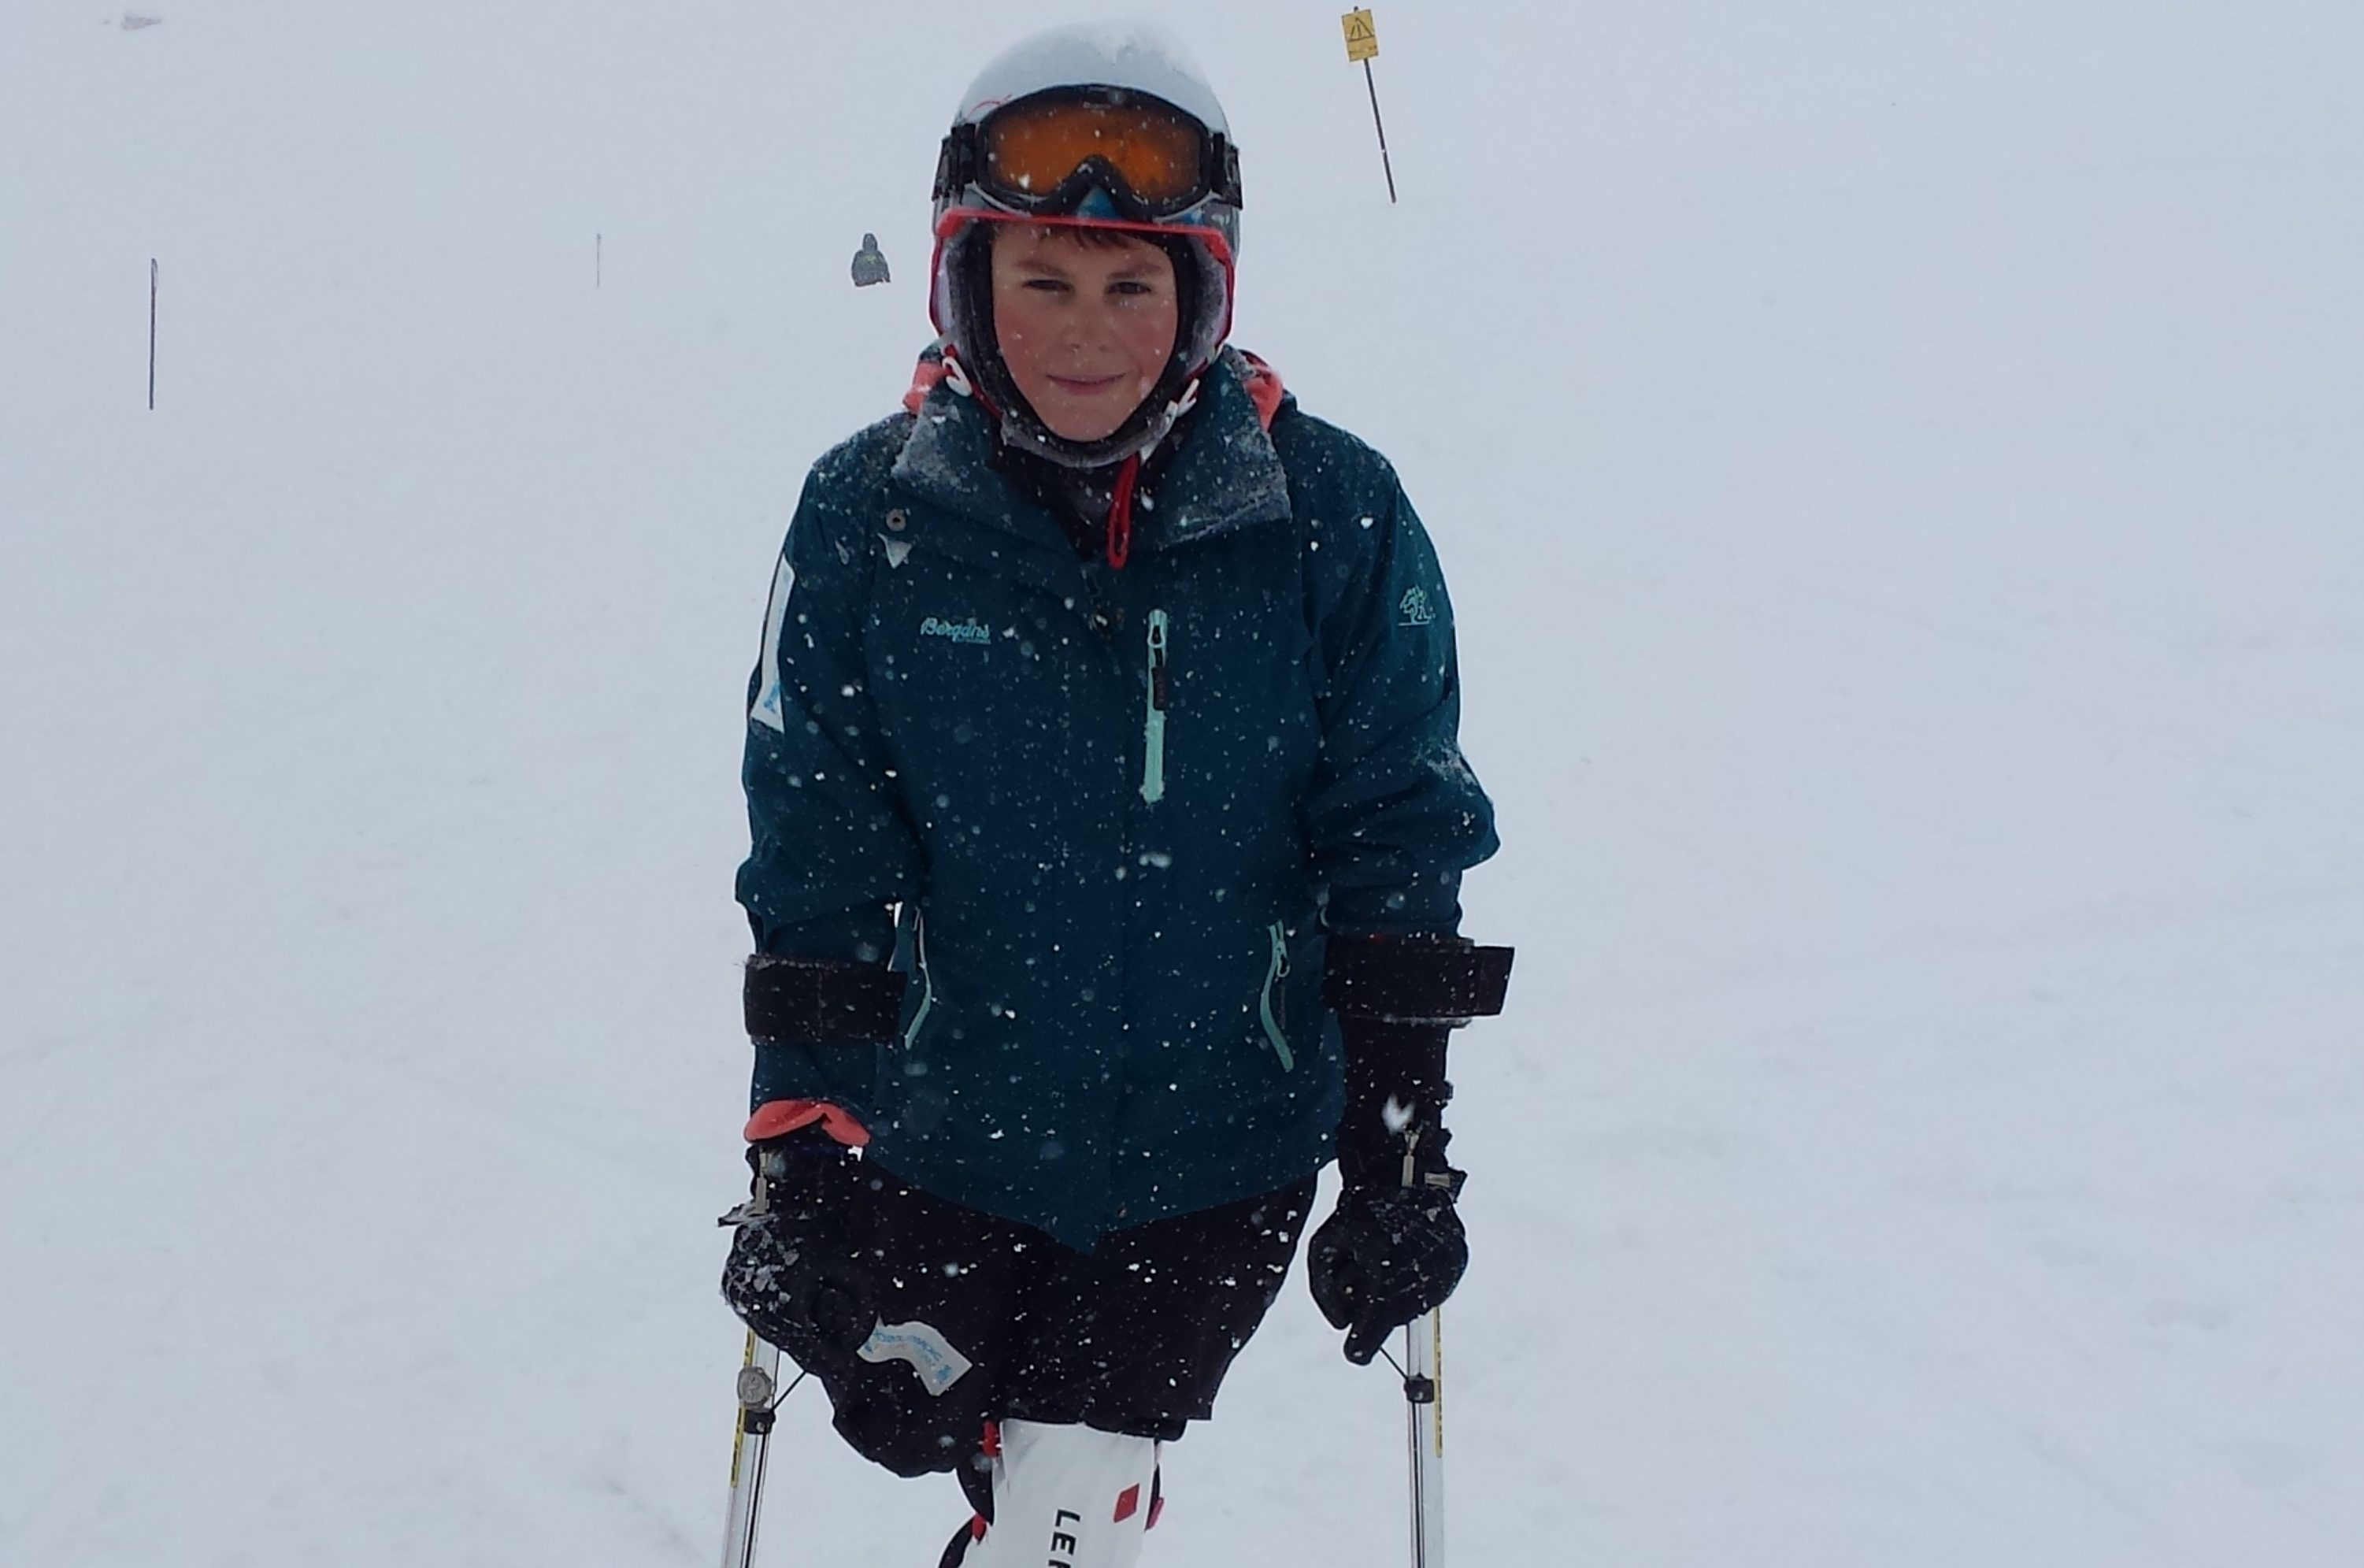 This picture shows a young boy standing on a skiing slope with a ski on his one remaining leg. Additionally, he has two supportive smaller skis on his arms. He has red cheeks, wears a helmet and smiles